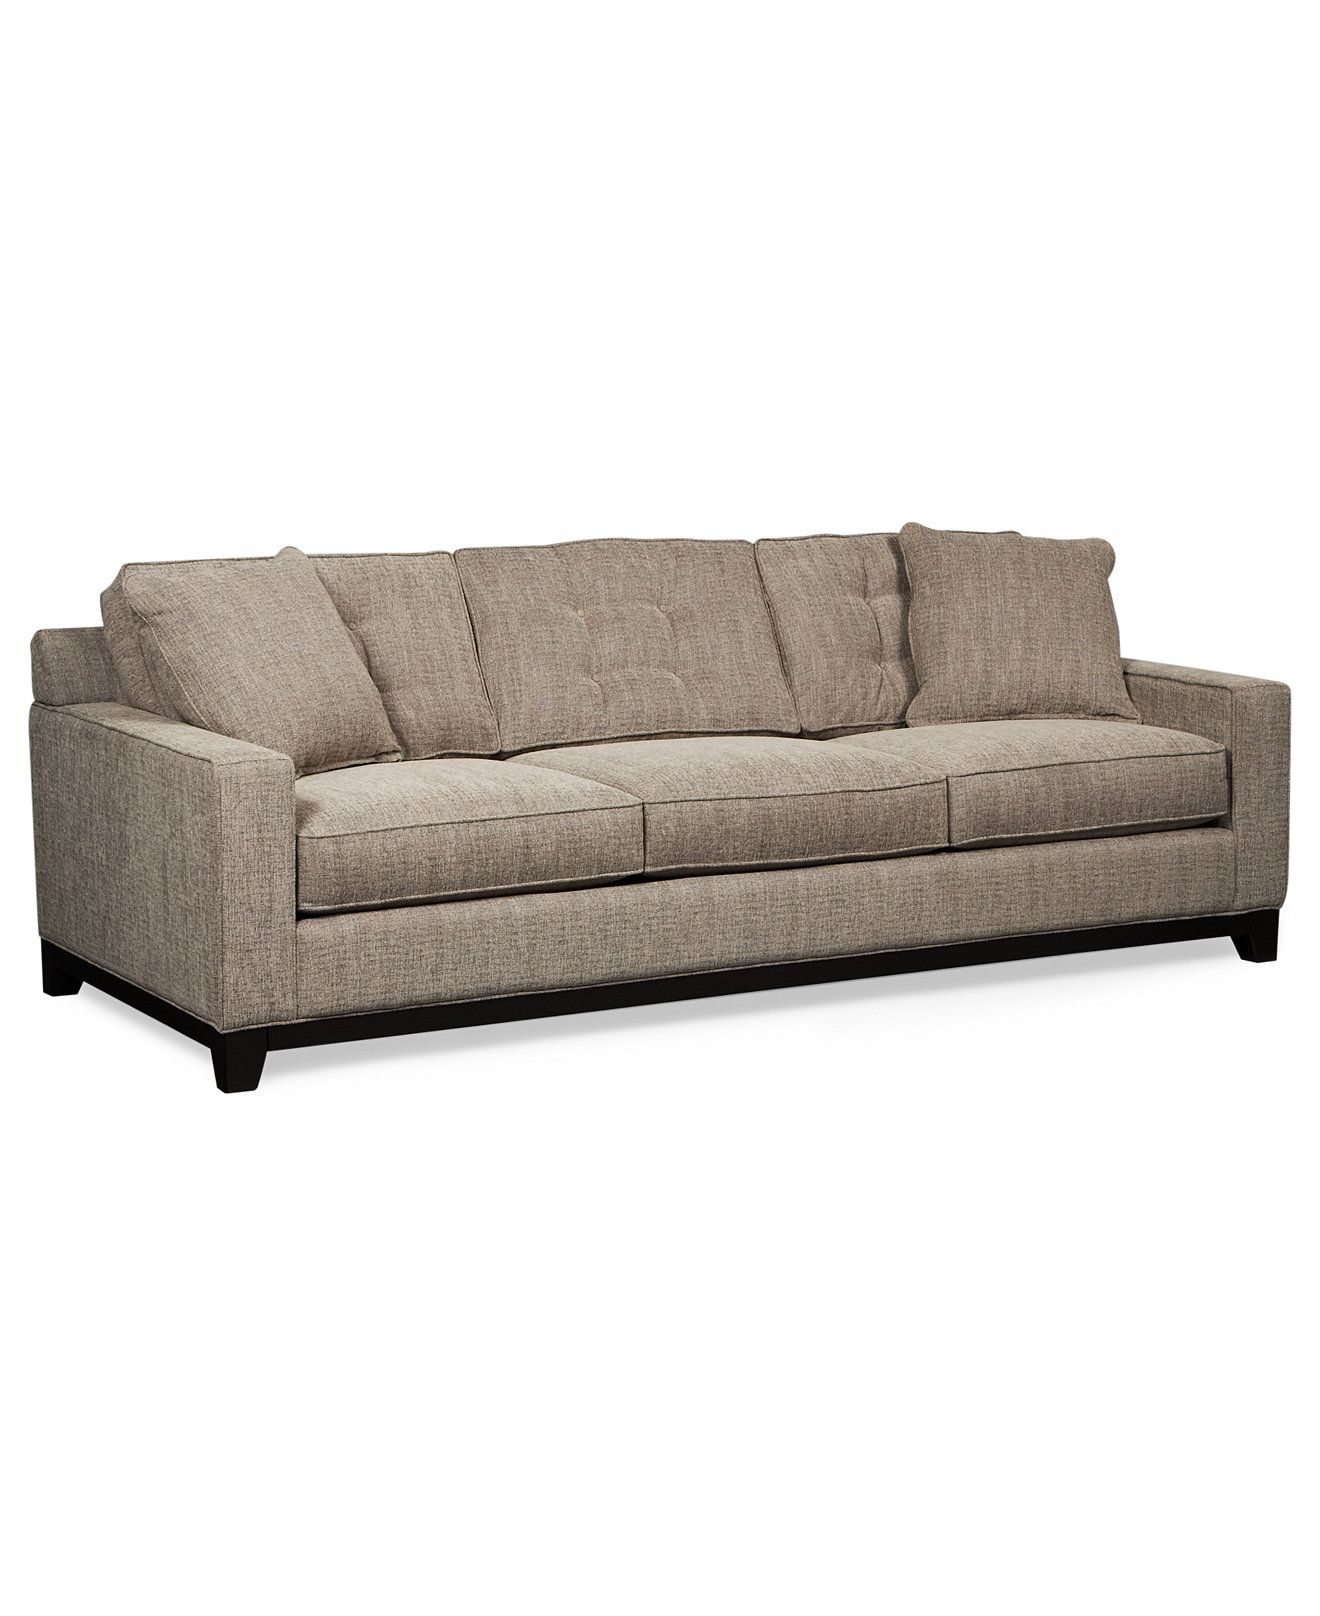 Clarke Fabric Queen Sleeper Sofa Bed Couches Sofas Furniture